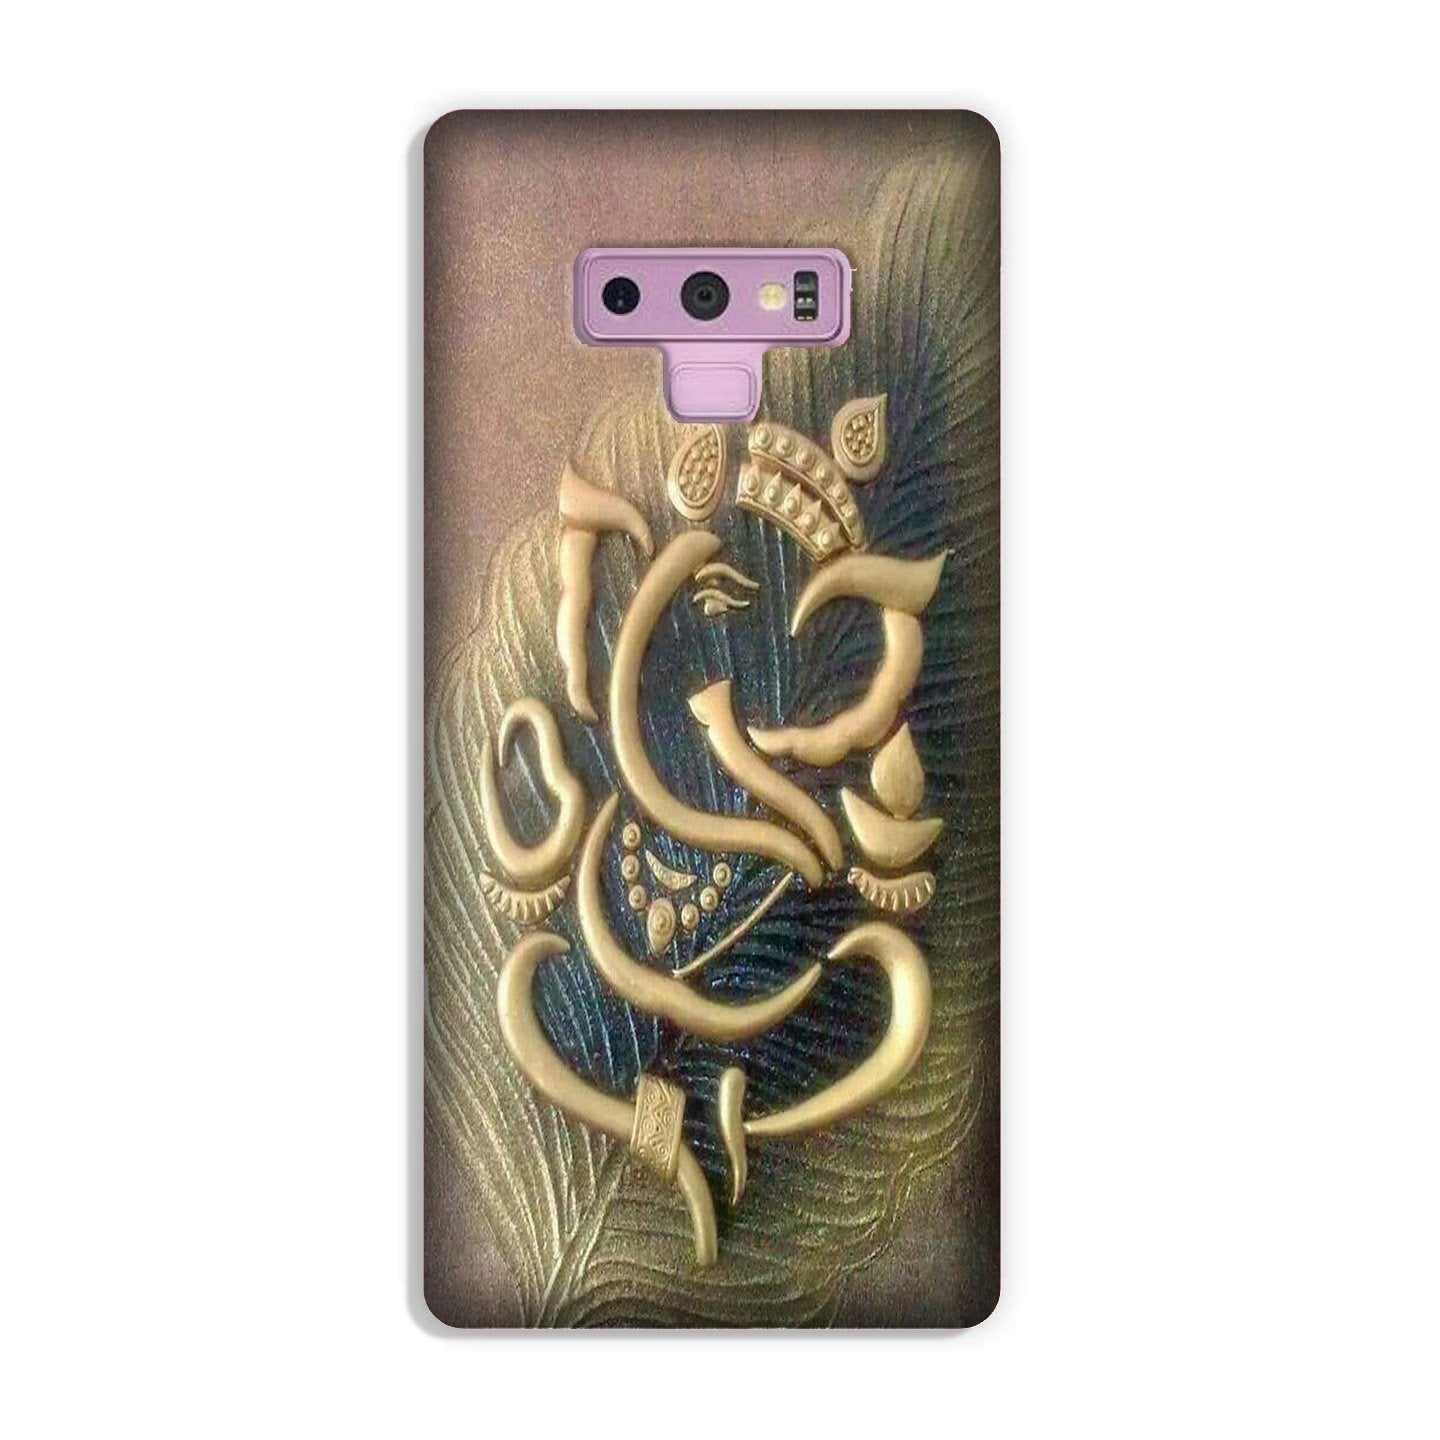 Lord Ganesha Case for Galaxy Note 9